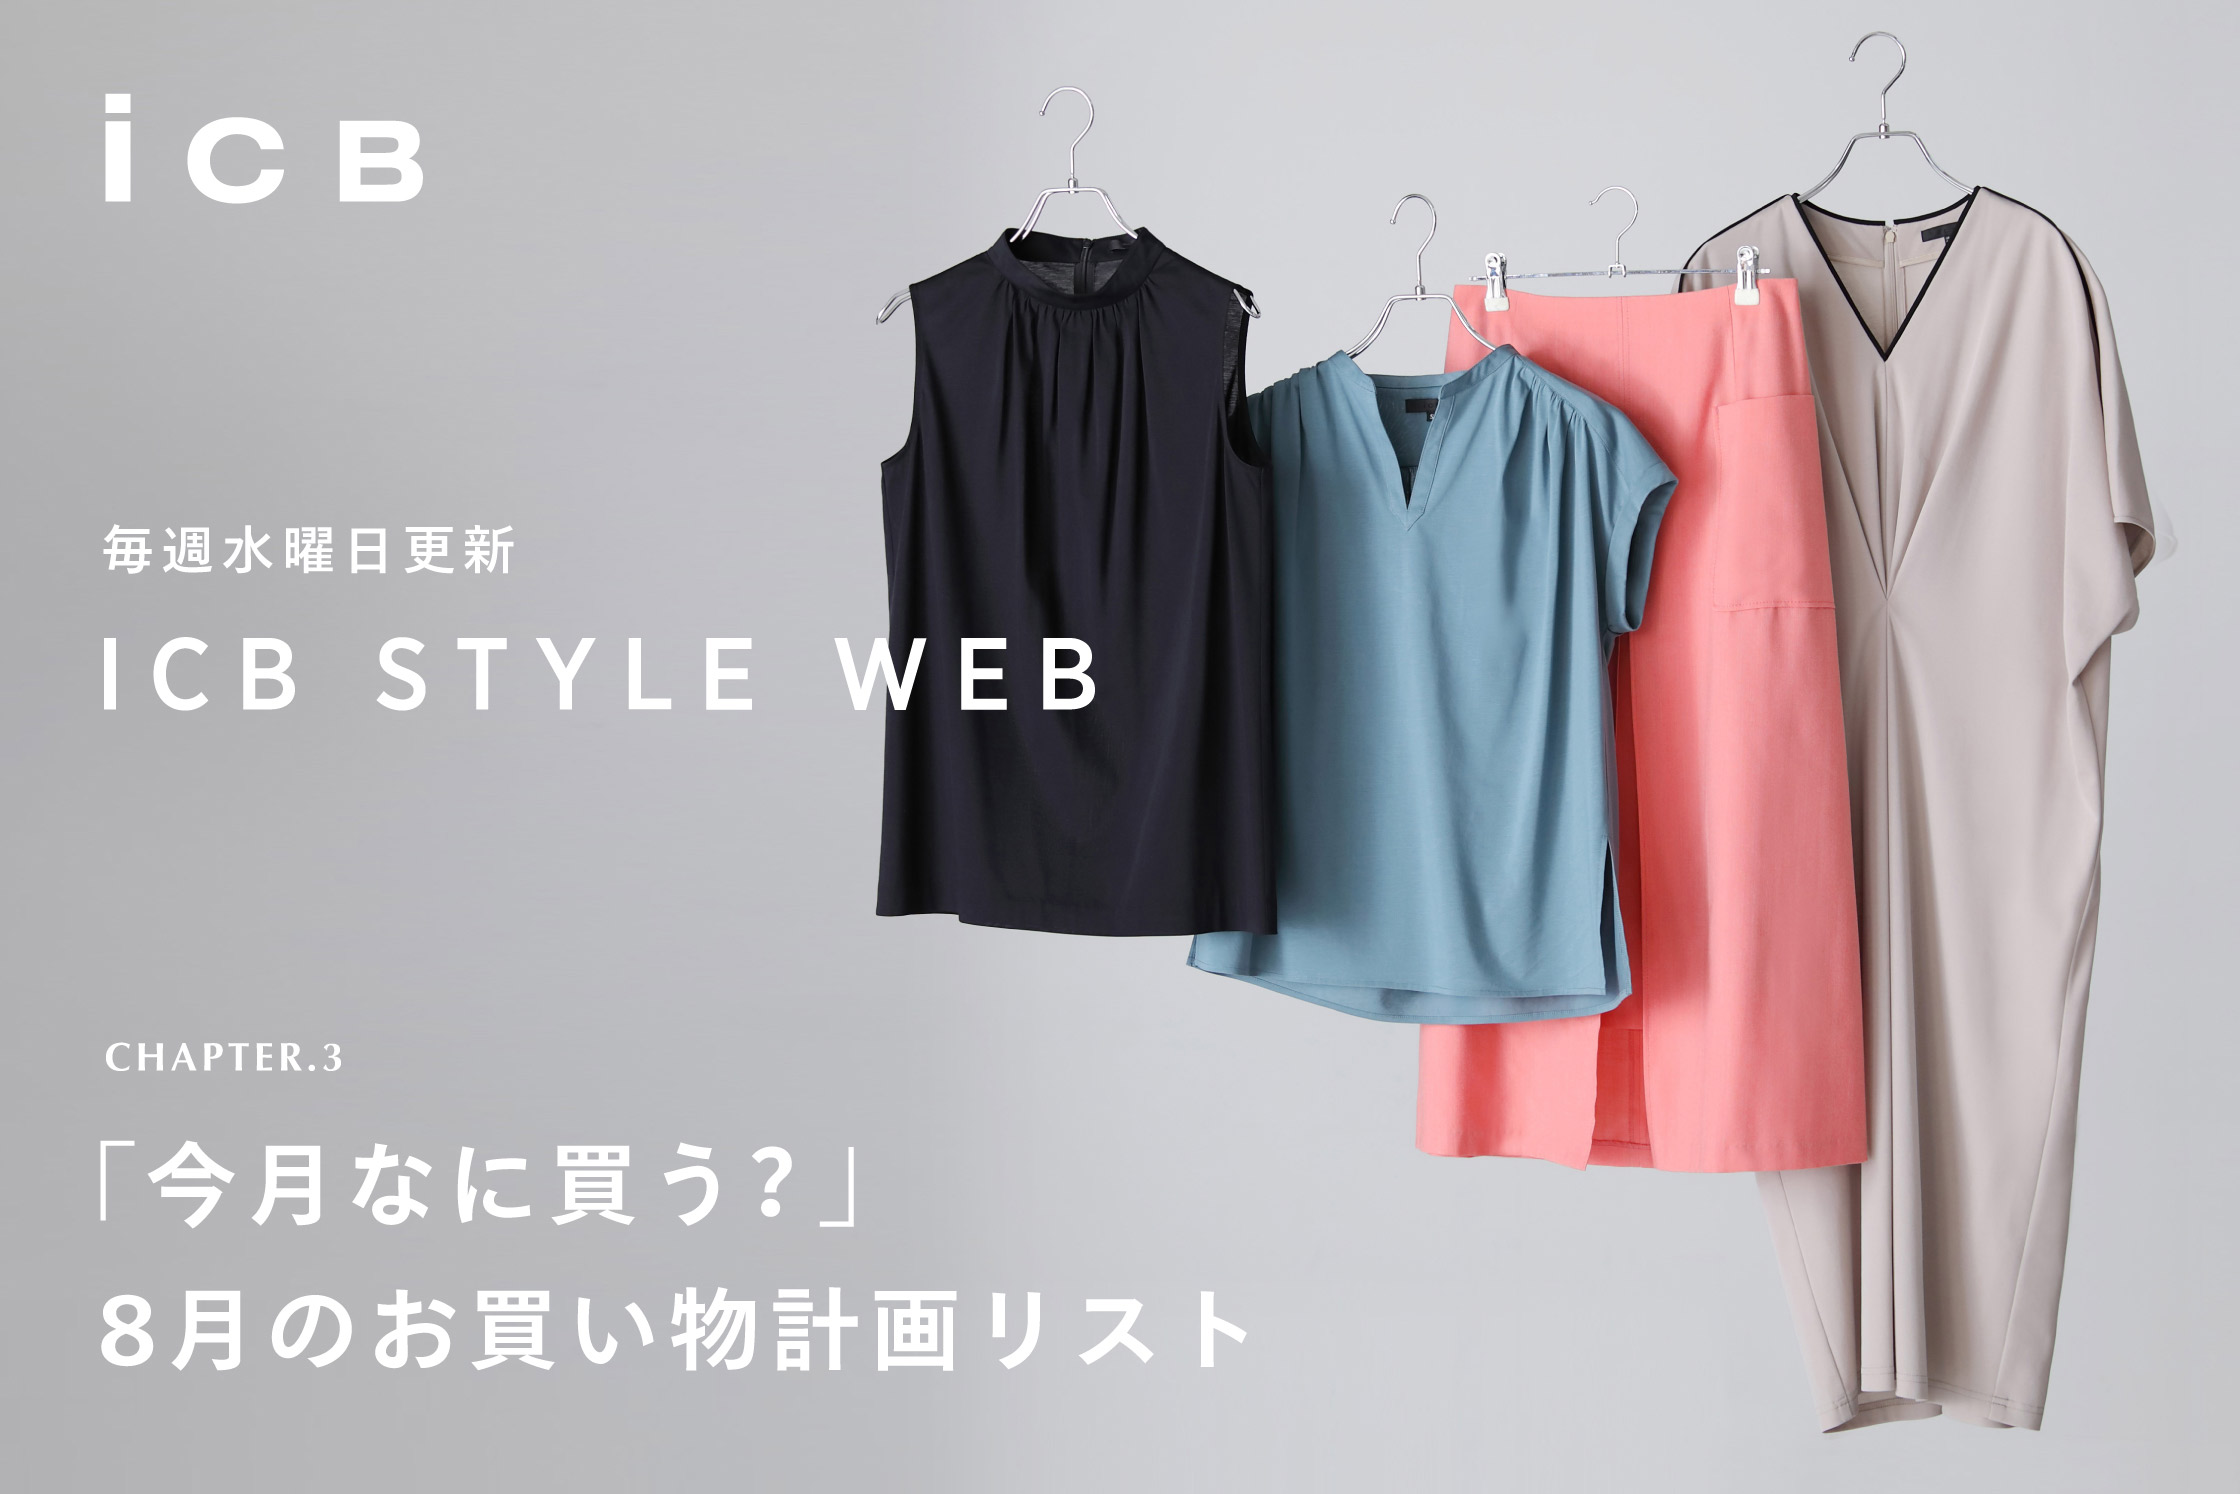 ICB STYLE WEB chapter.3「